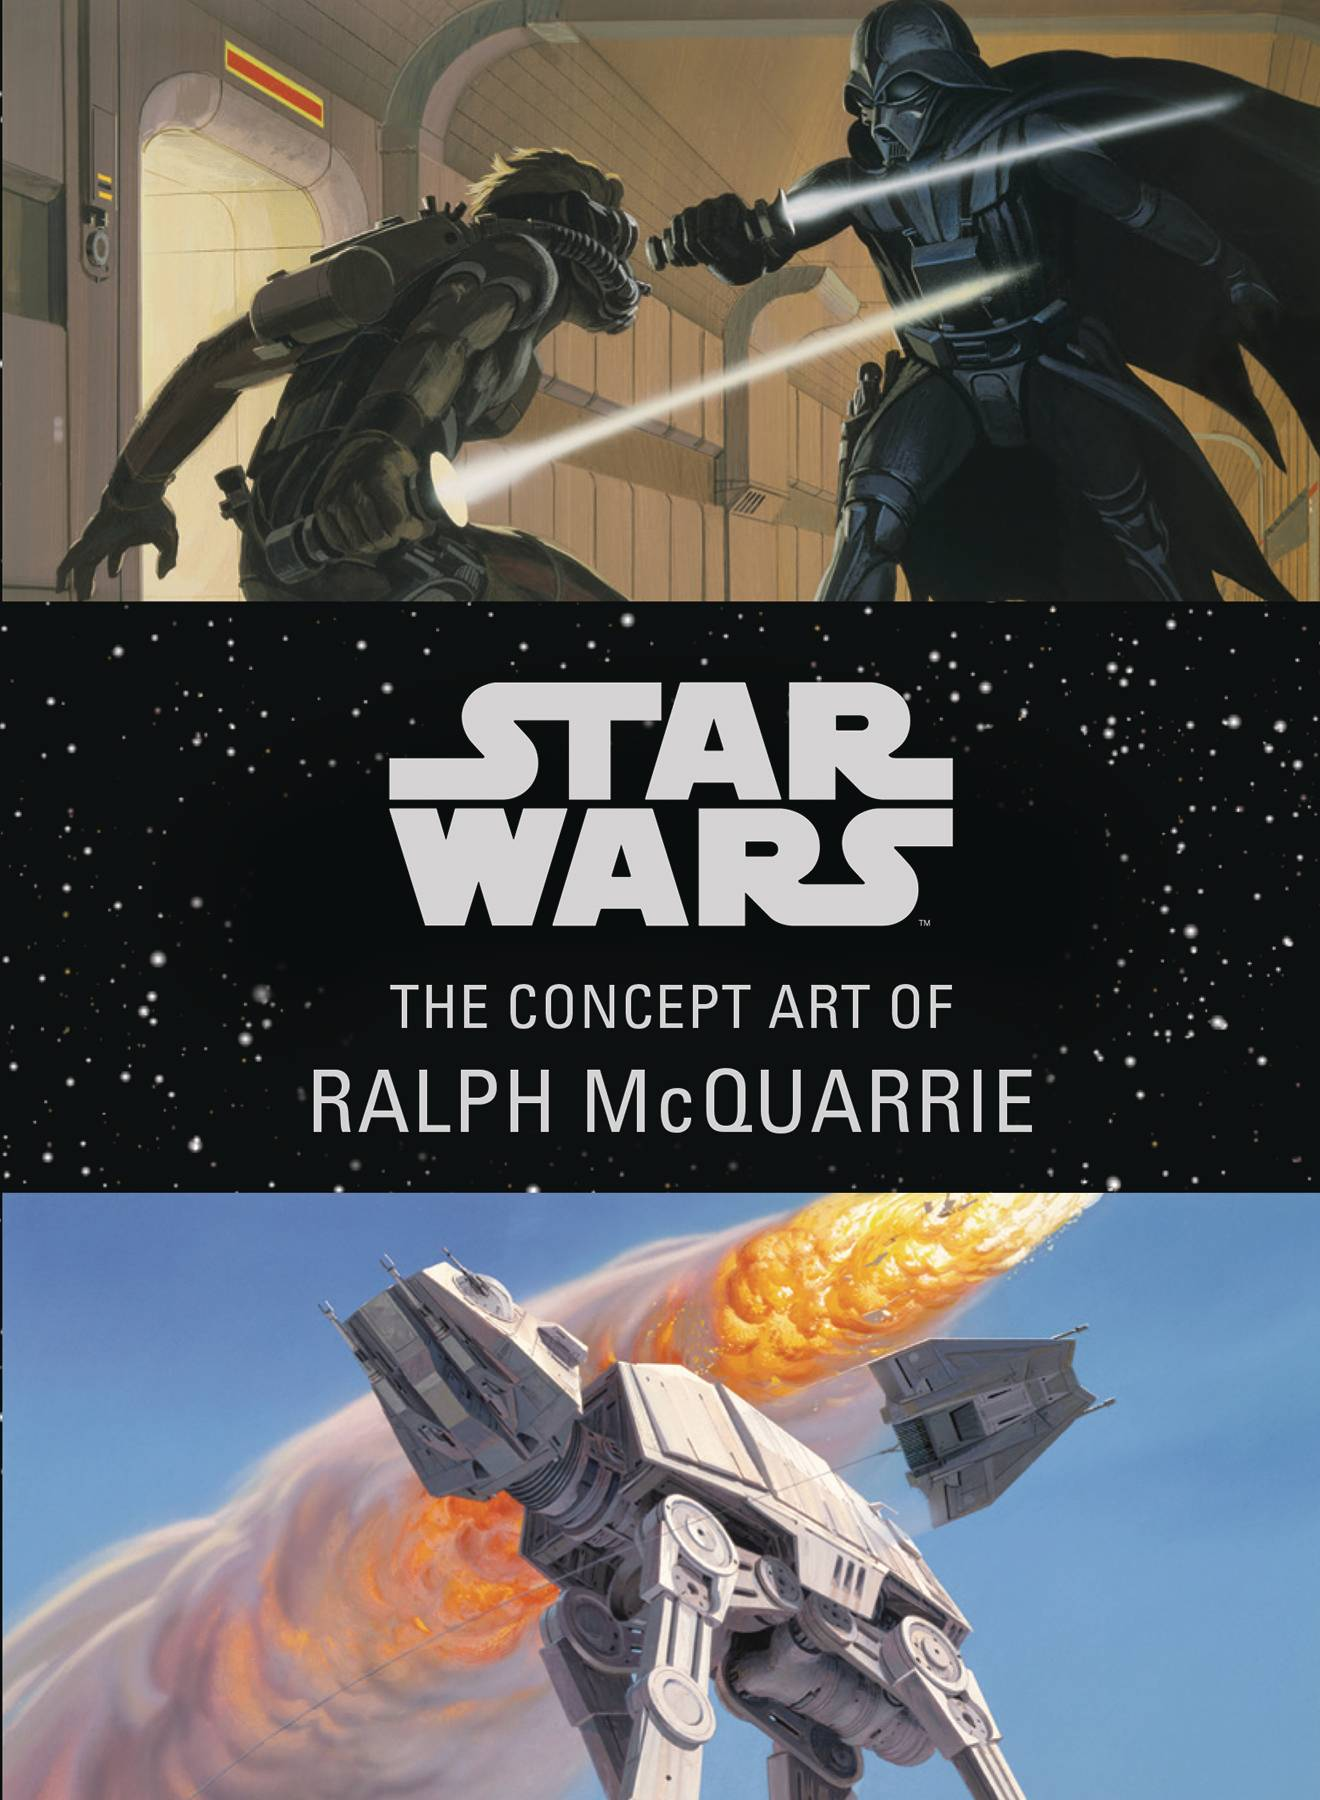 STAR WARS CONCEPT ART RALPH MCQUARRIE MINI HC